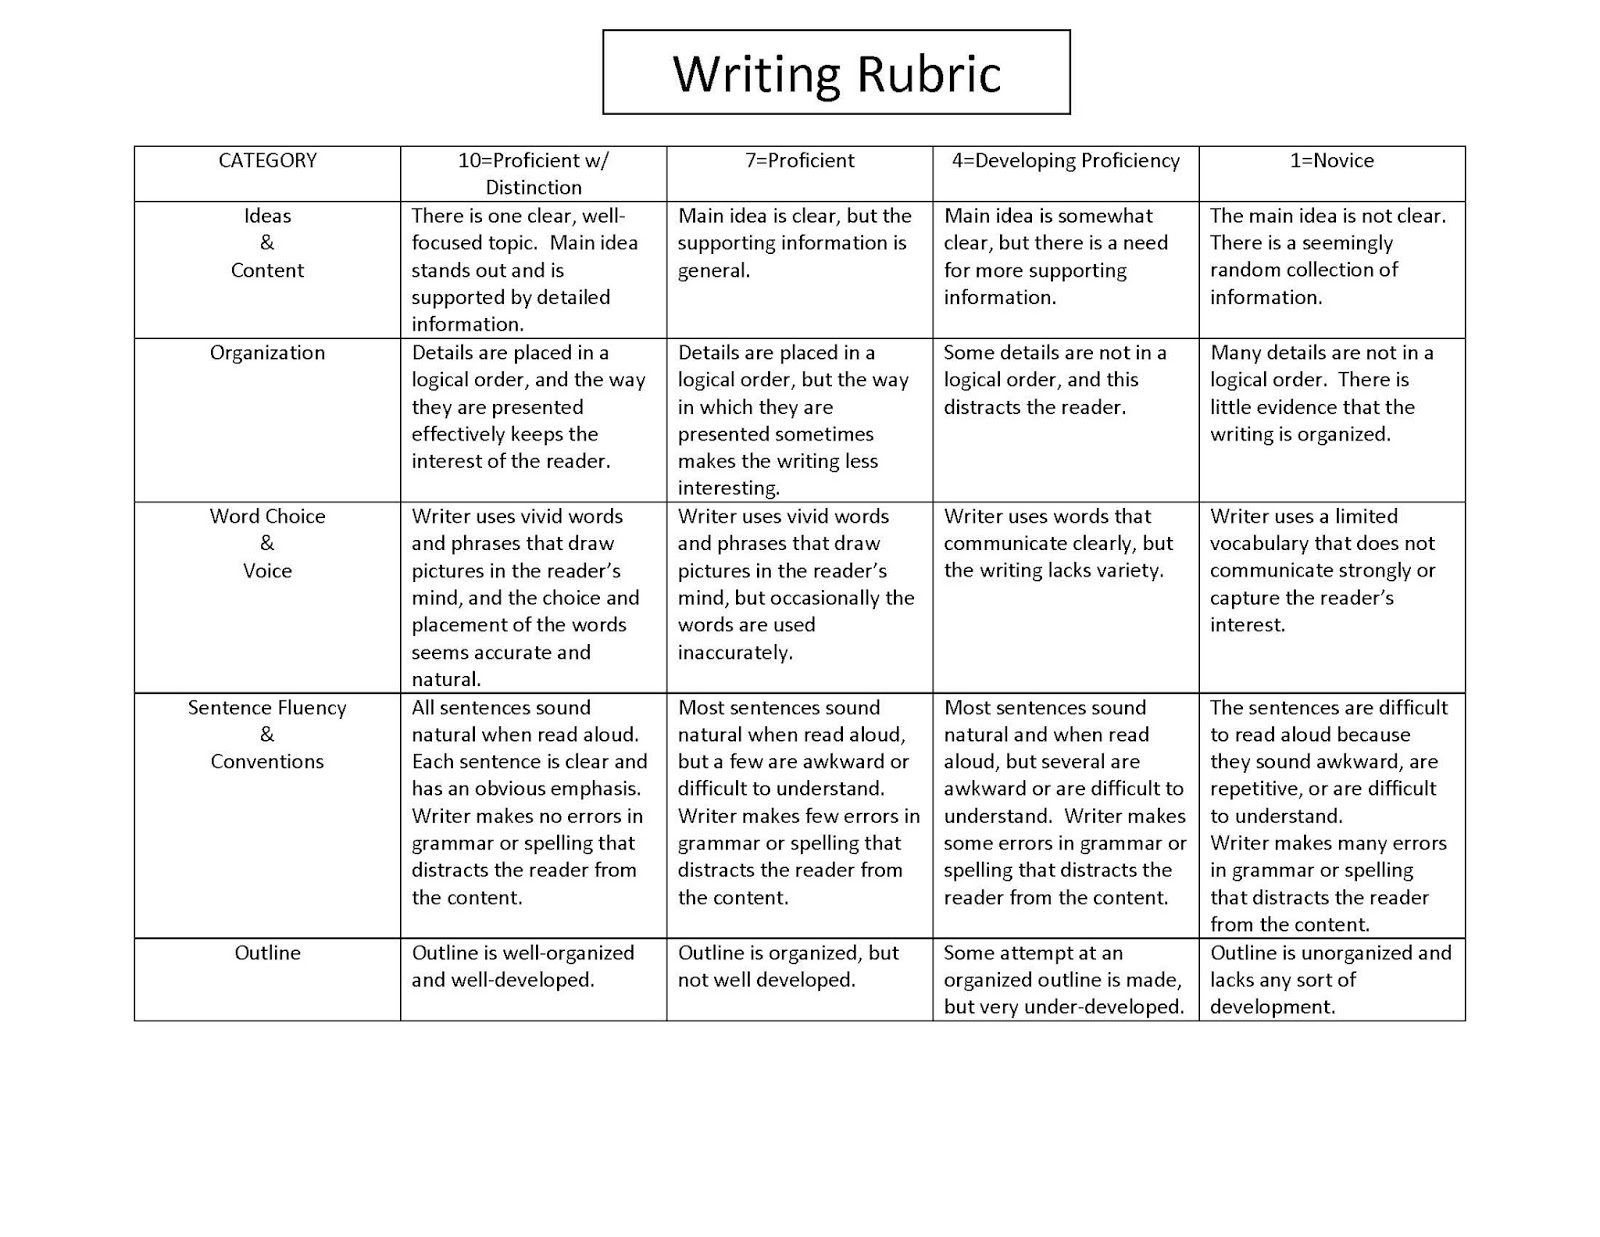 general essay grading rubric Office of academic assessment today's hours march 9, 2018 today's hours march 9, 2018 office hours scripps college grading criteria for argumentative essays (general resources.